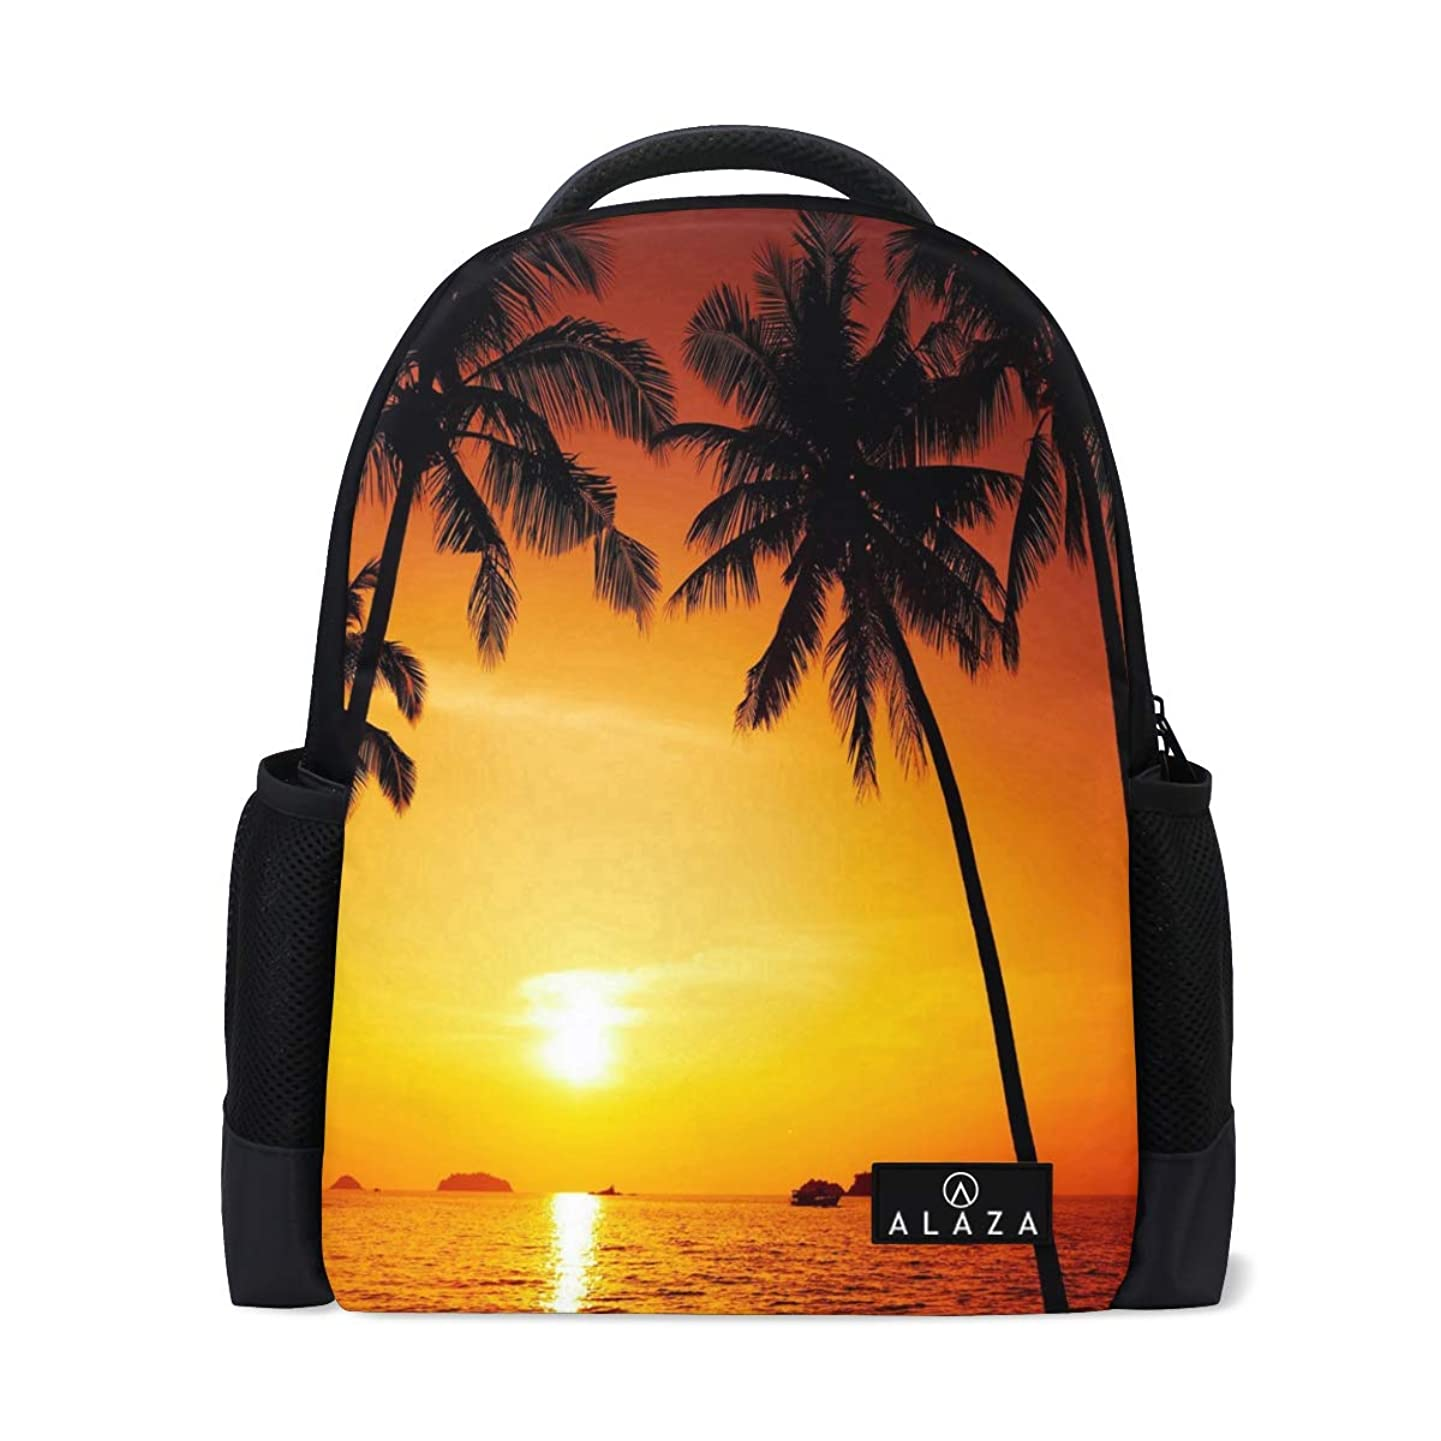 Travel Laptop Backpack Women Print Bookbags Palm Tree Sunset Nature School College Student Daypack for Girls Teenage